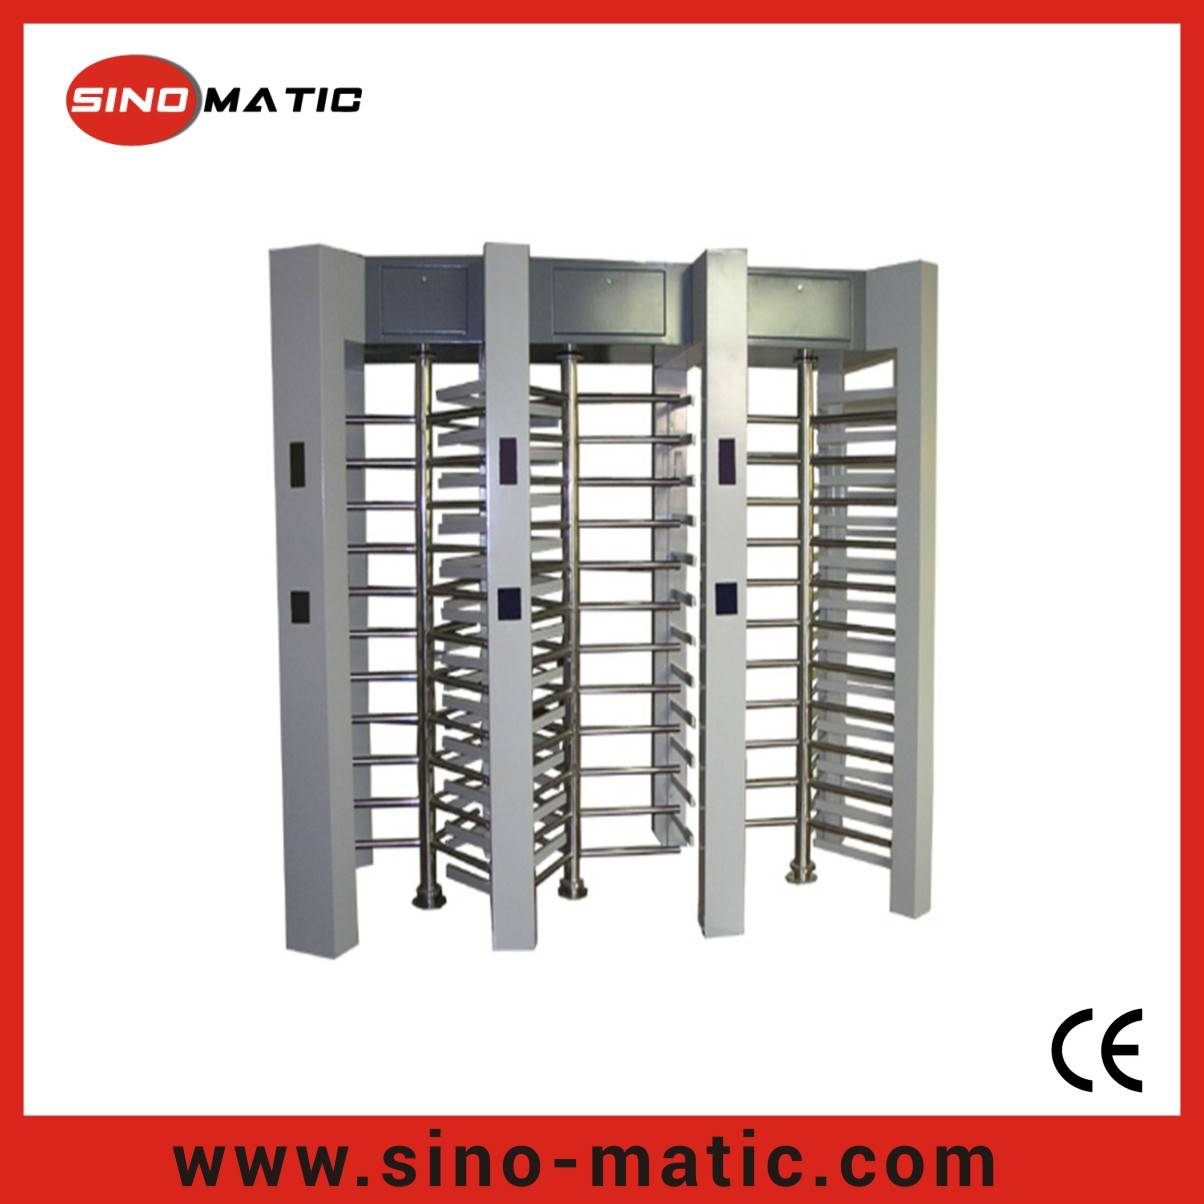 304 Stainless Steel Crowd Control Access Control RFID Card Full Height Turnstile